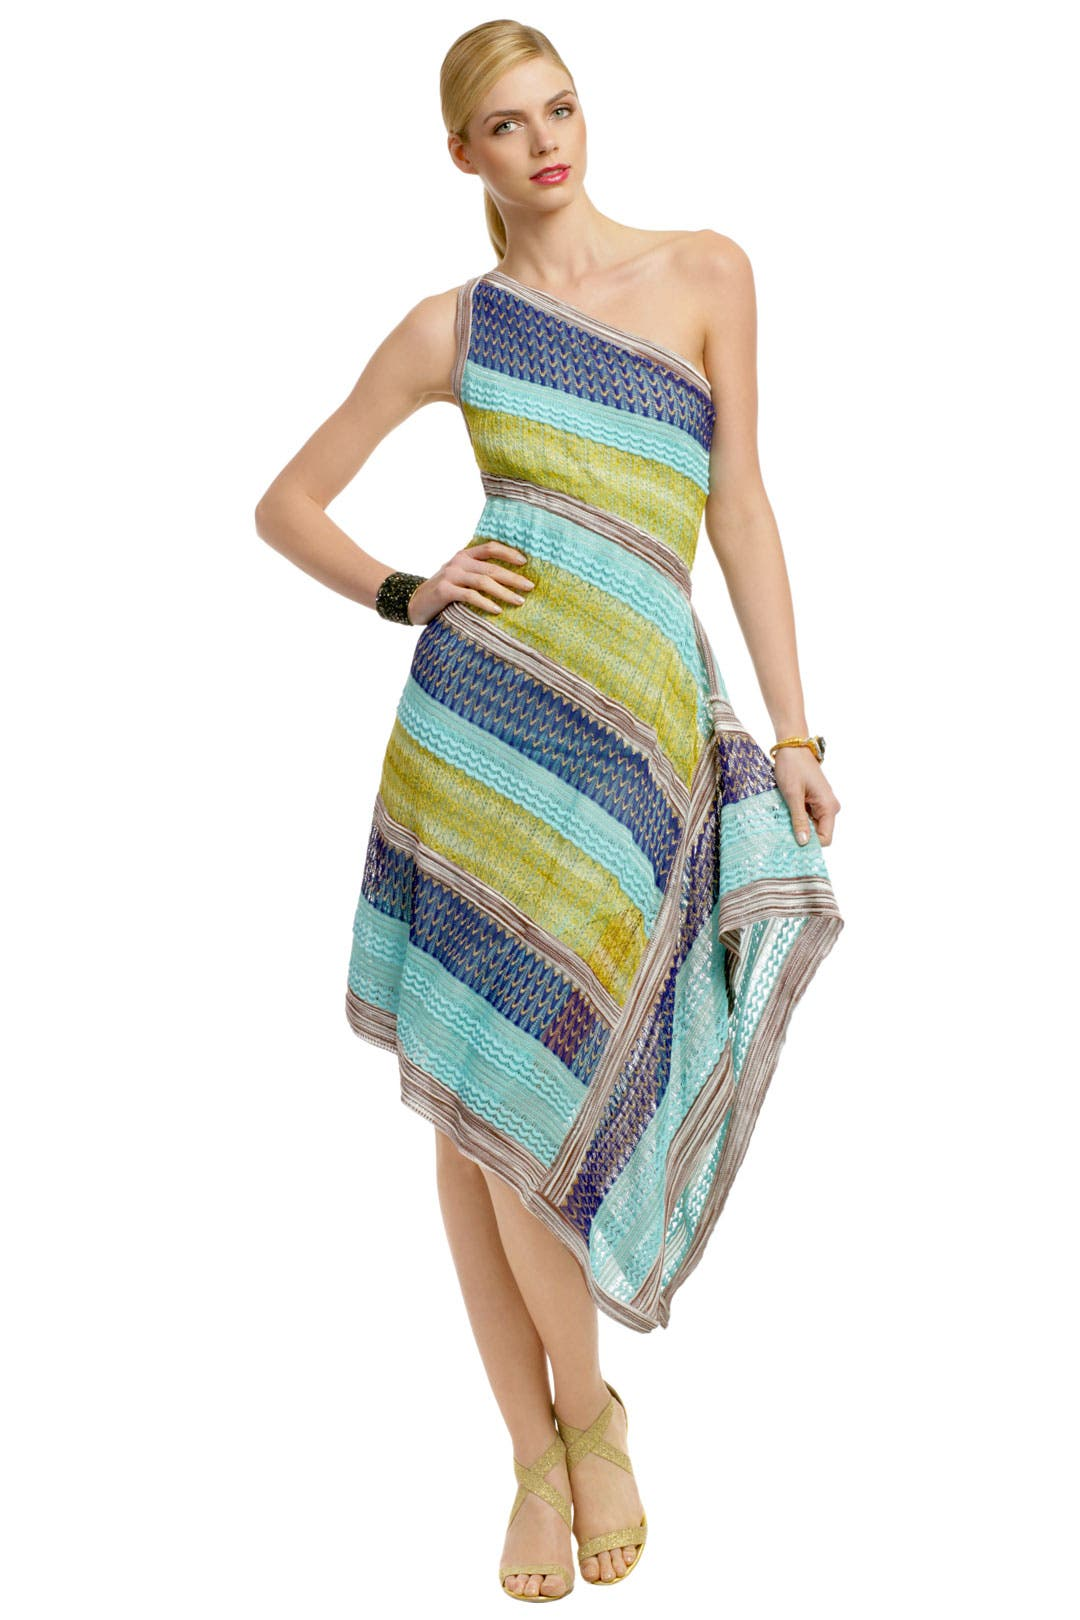 Mermaid Isle Dress by Missoni